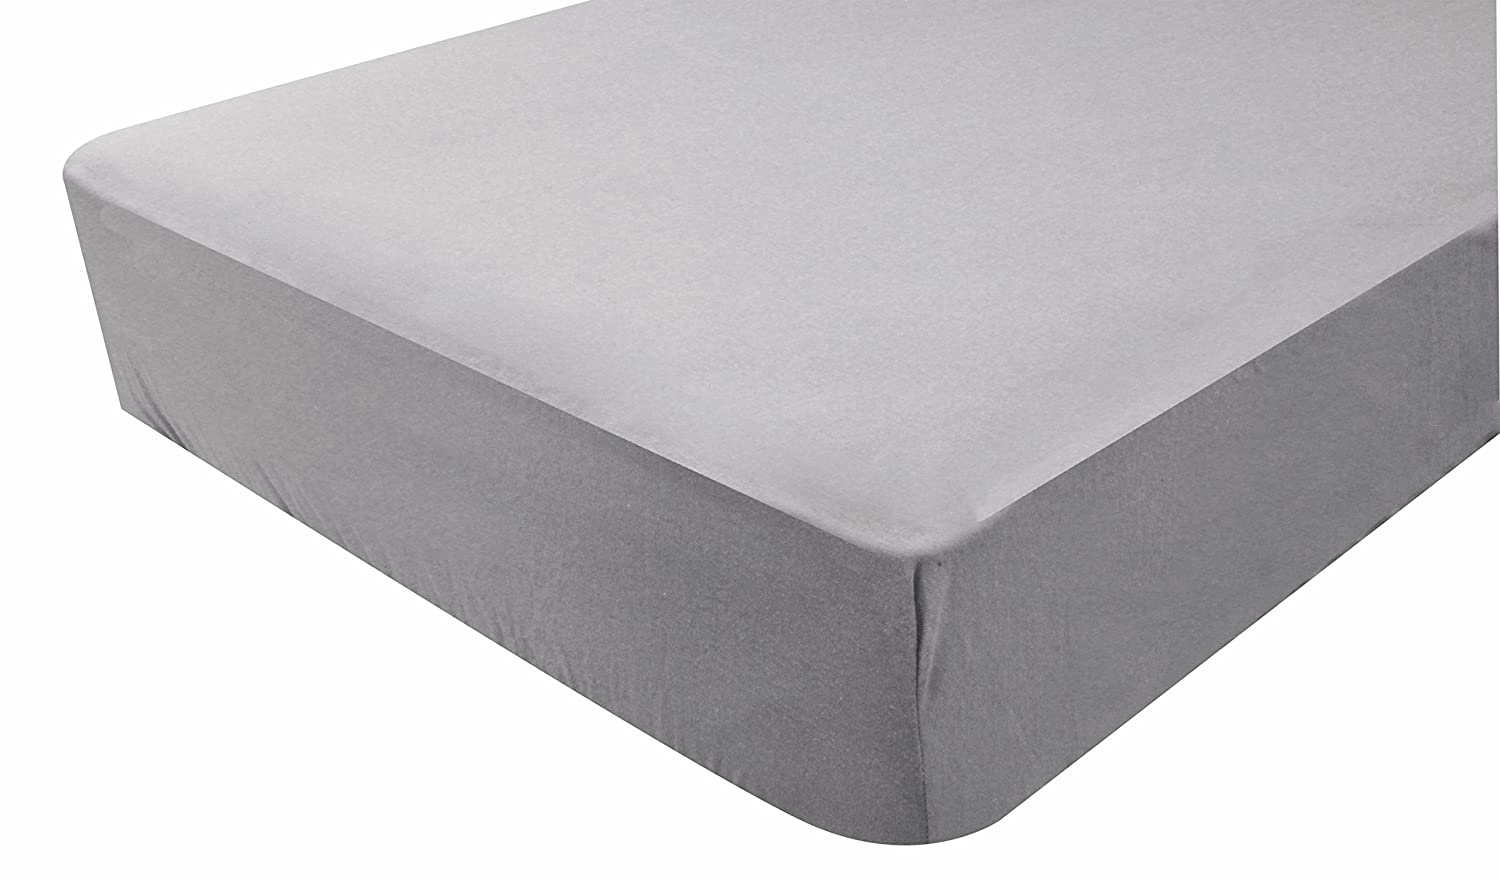 One Size Mole Poyetmotte Fitted Sheet 70 x 140 cm